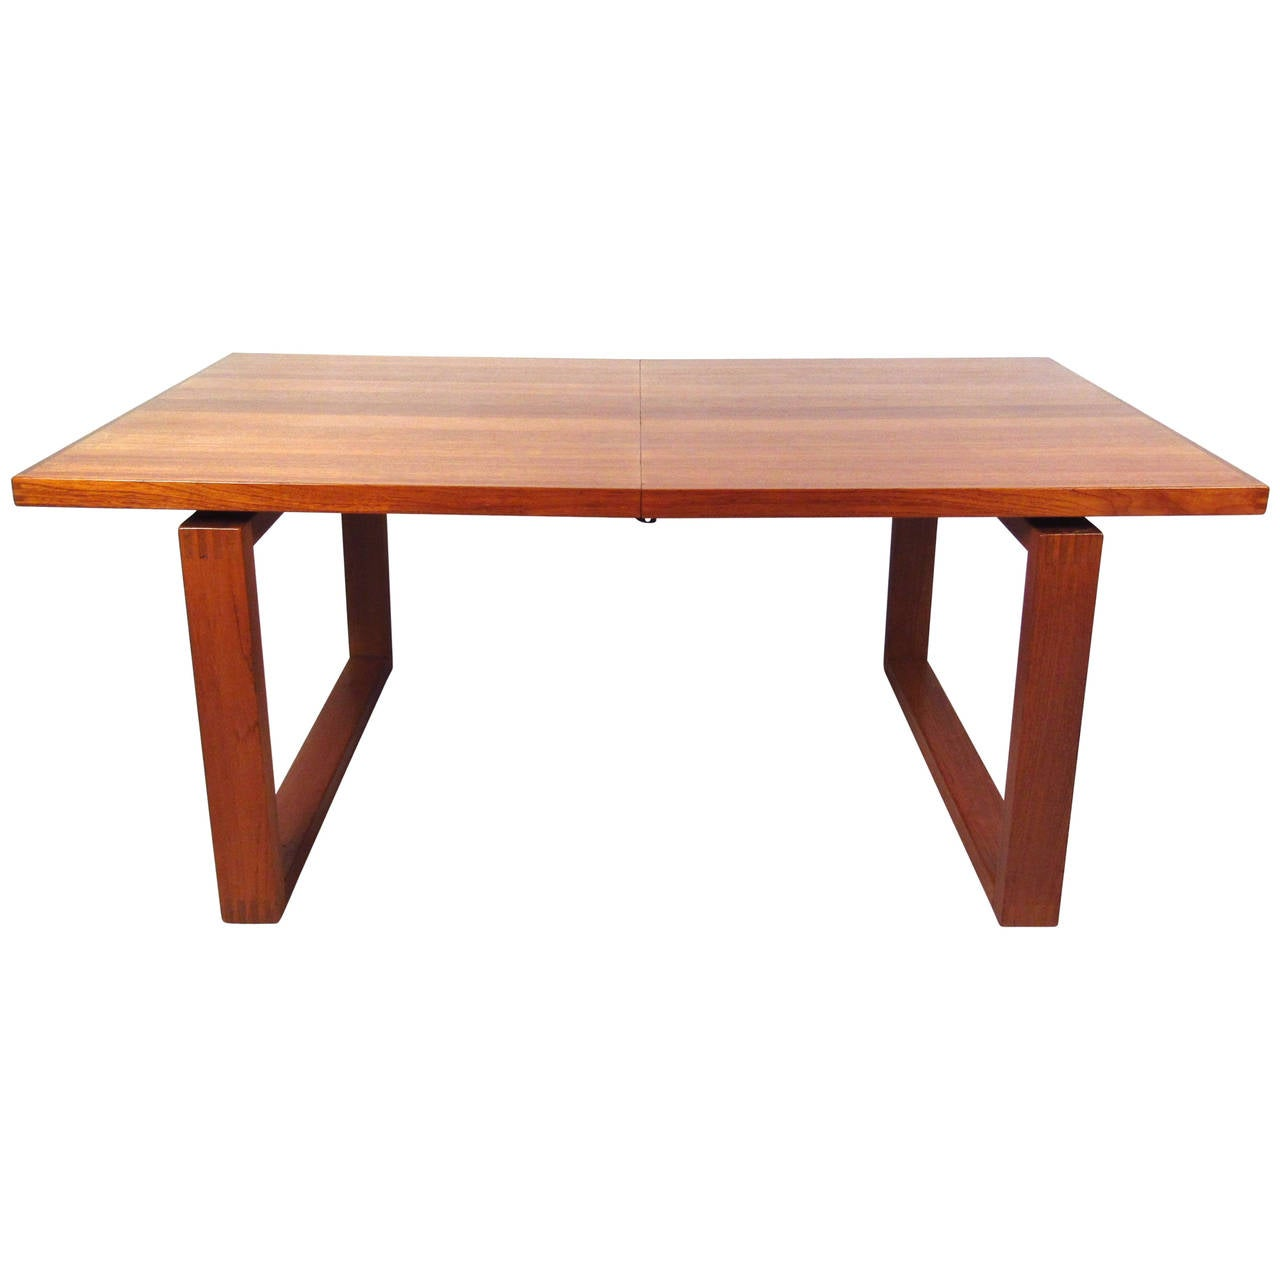 Unique danish teak sled leg dining table for sale at 1stdibs for Unique dining tables